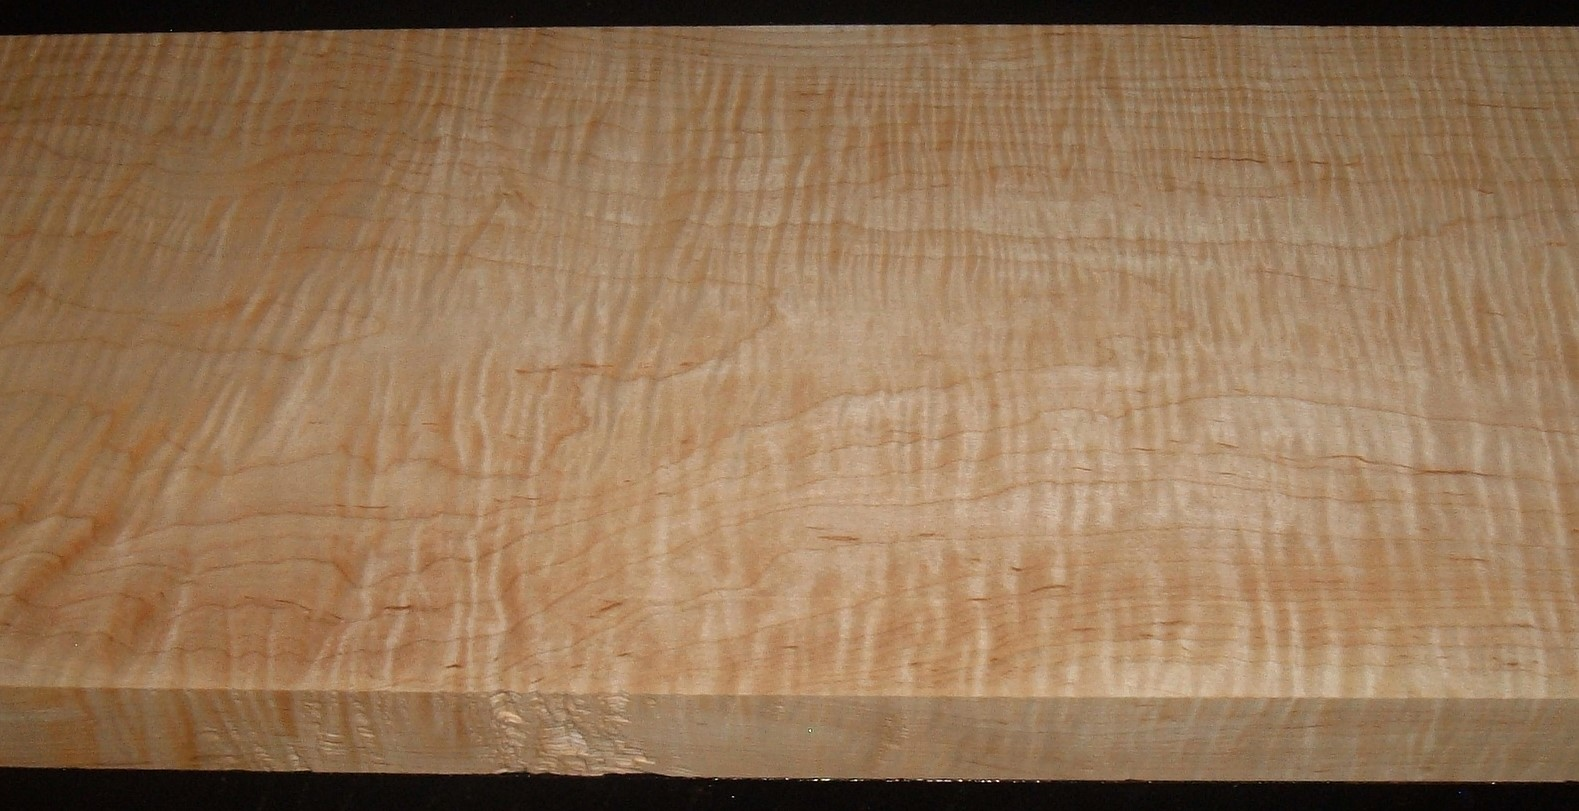 M2004-391JJ, 1-1/2x11-1/4x44, Curly Tiger Maple